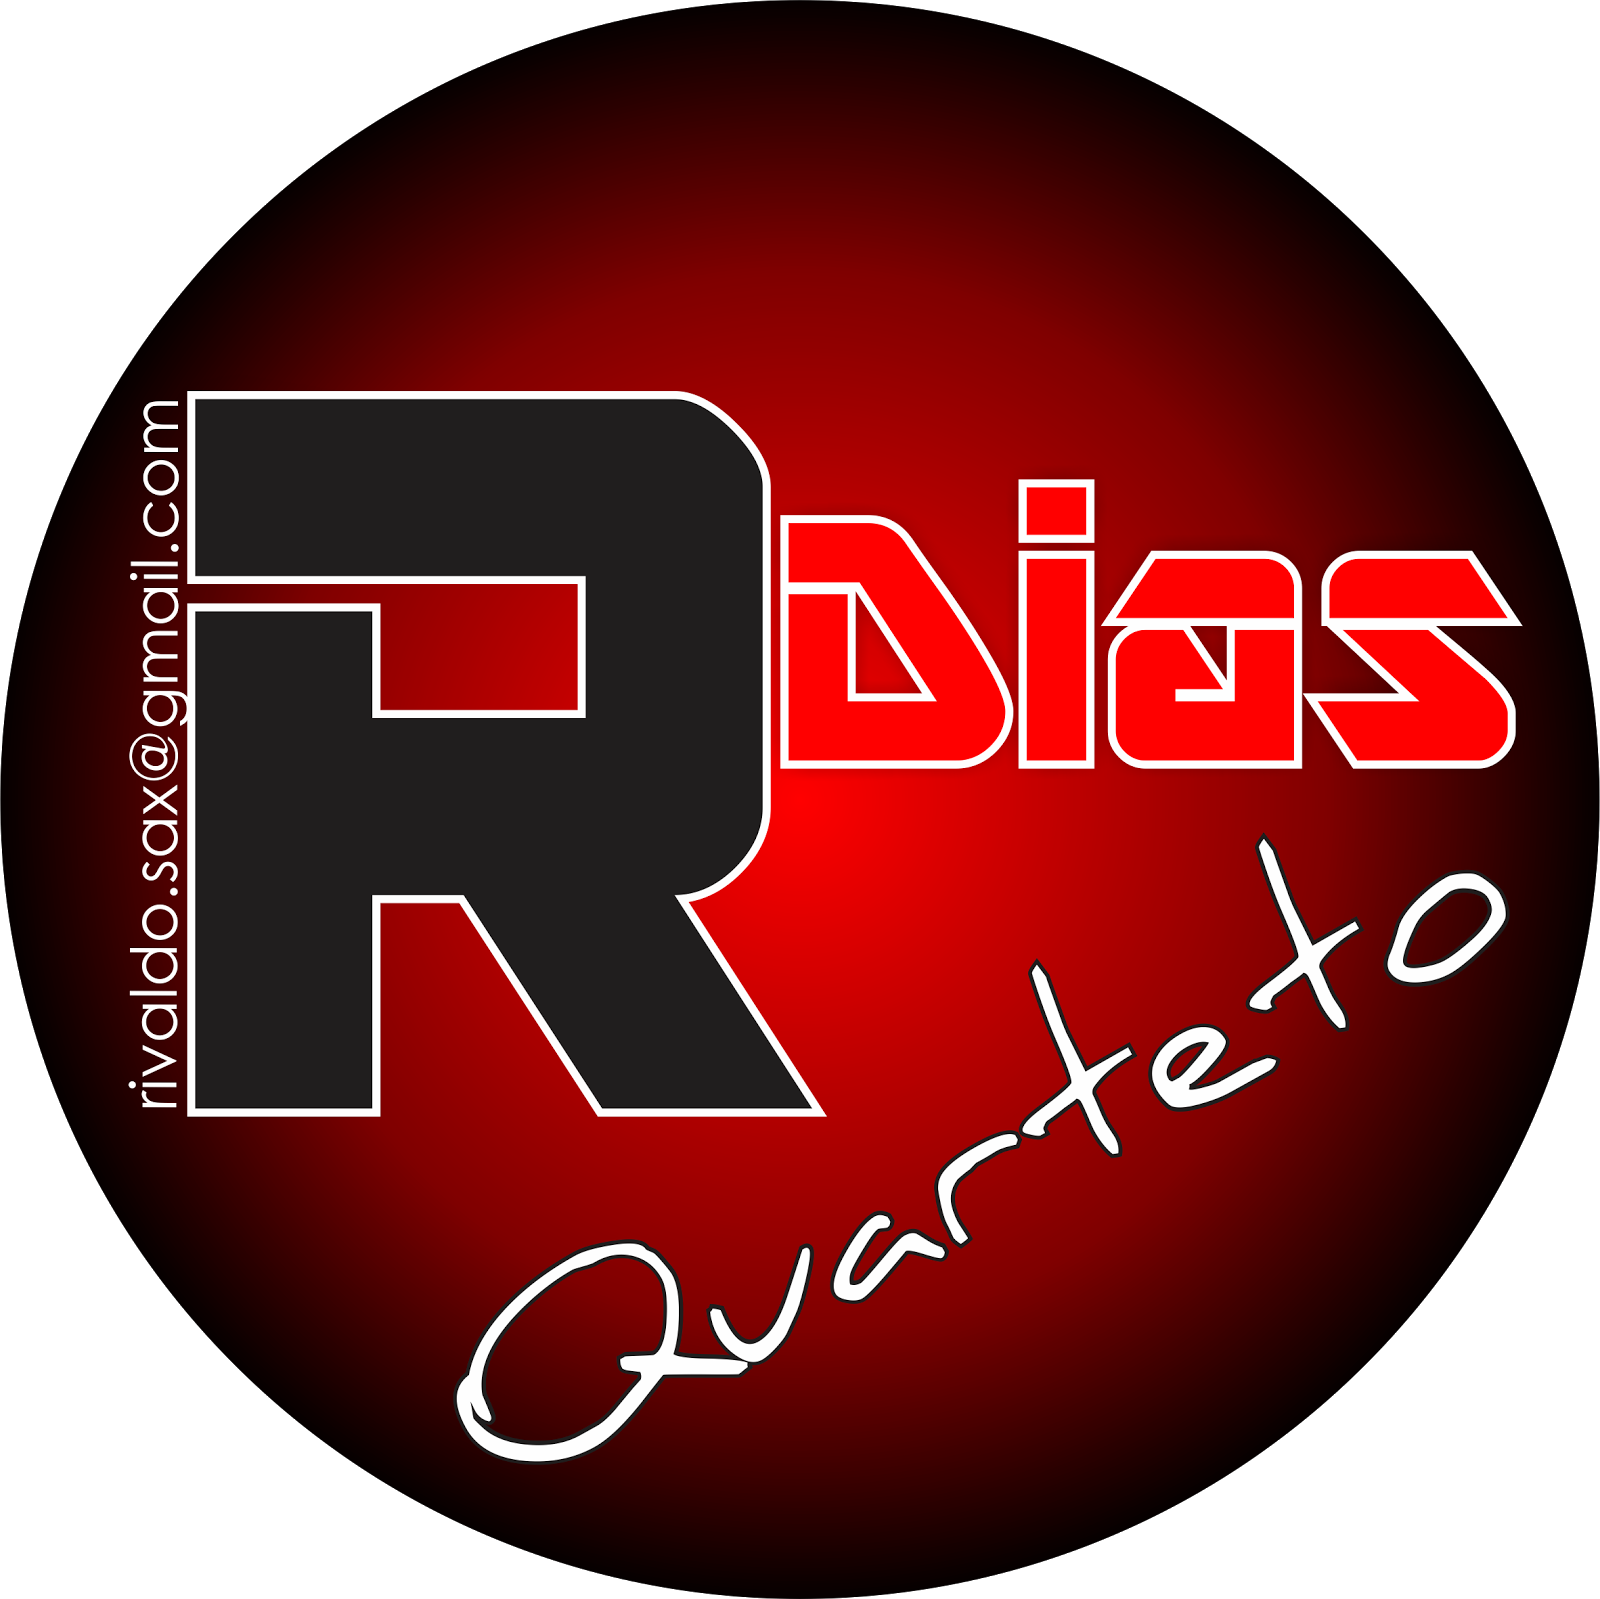 RDias Quarteto